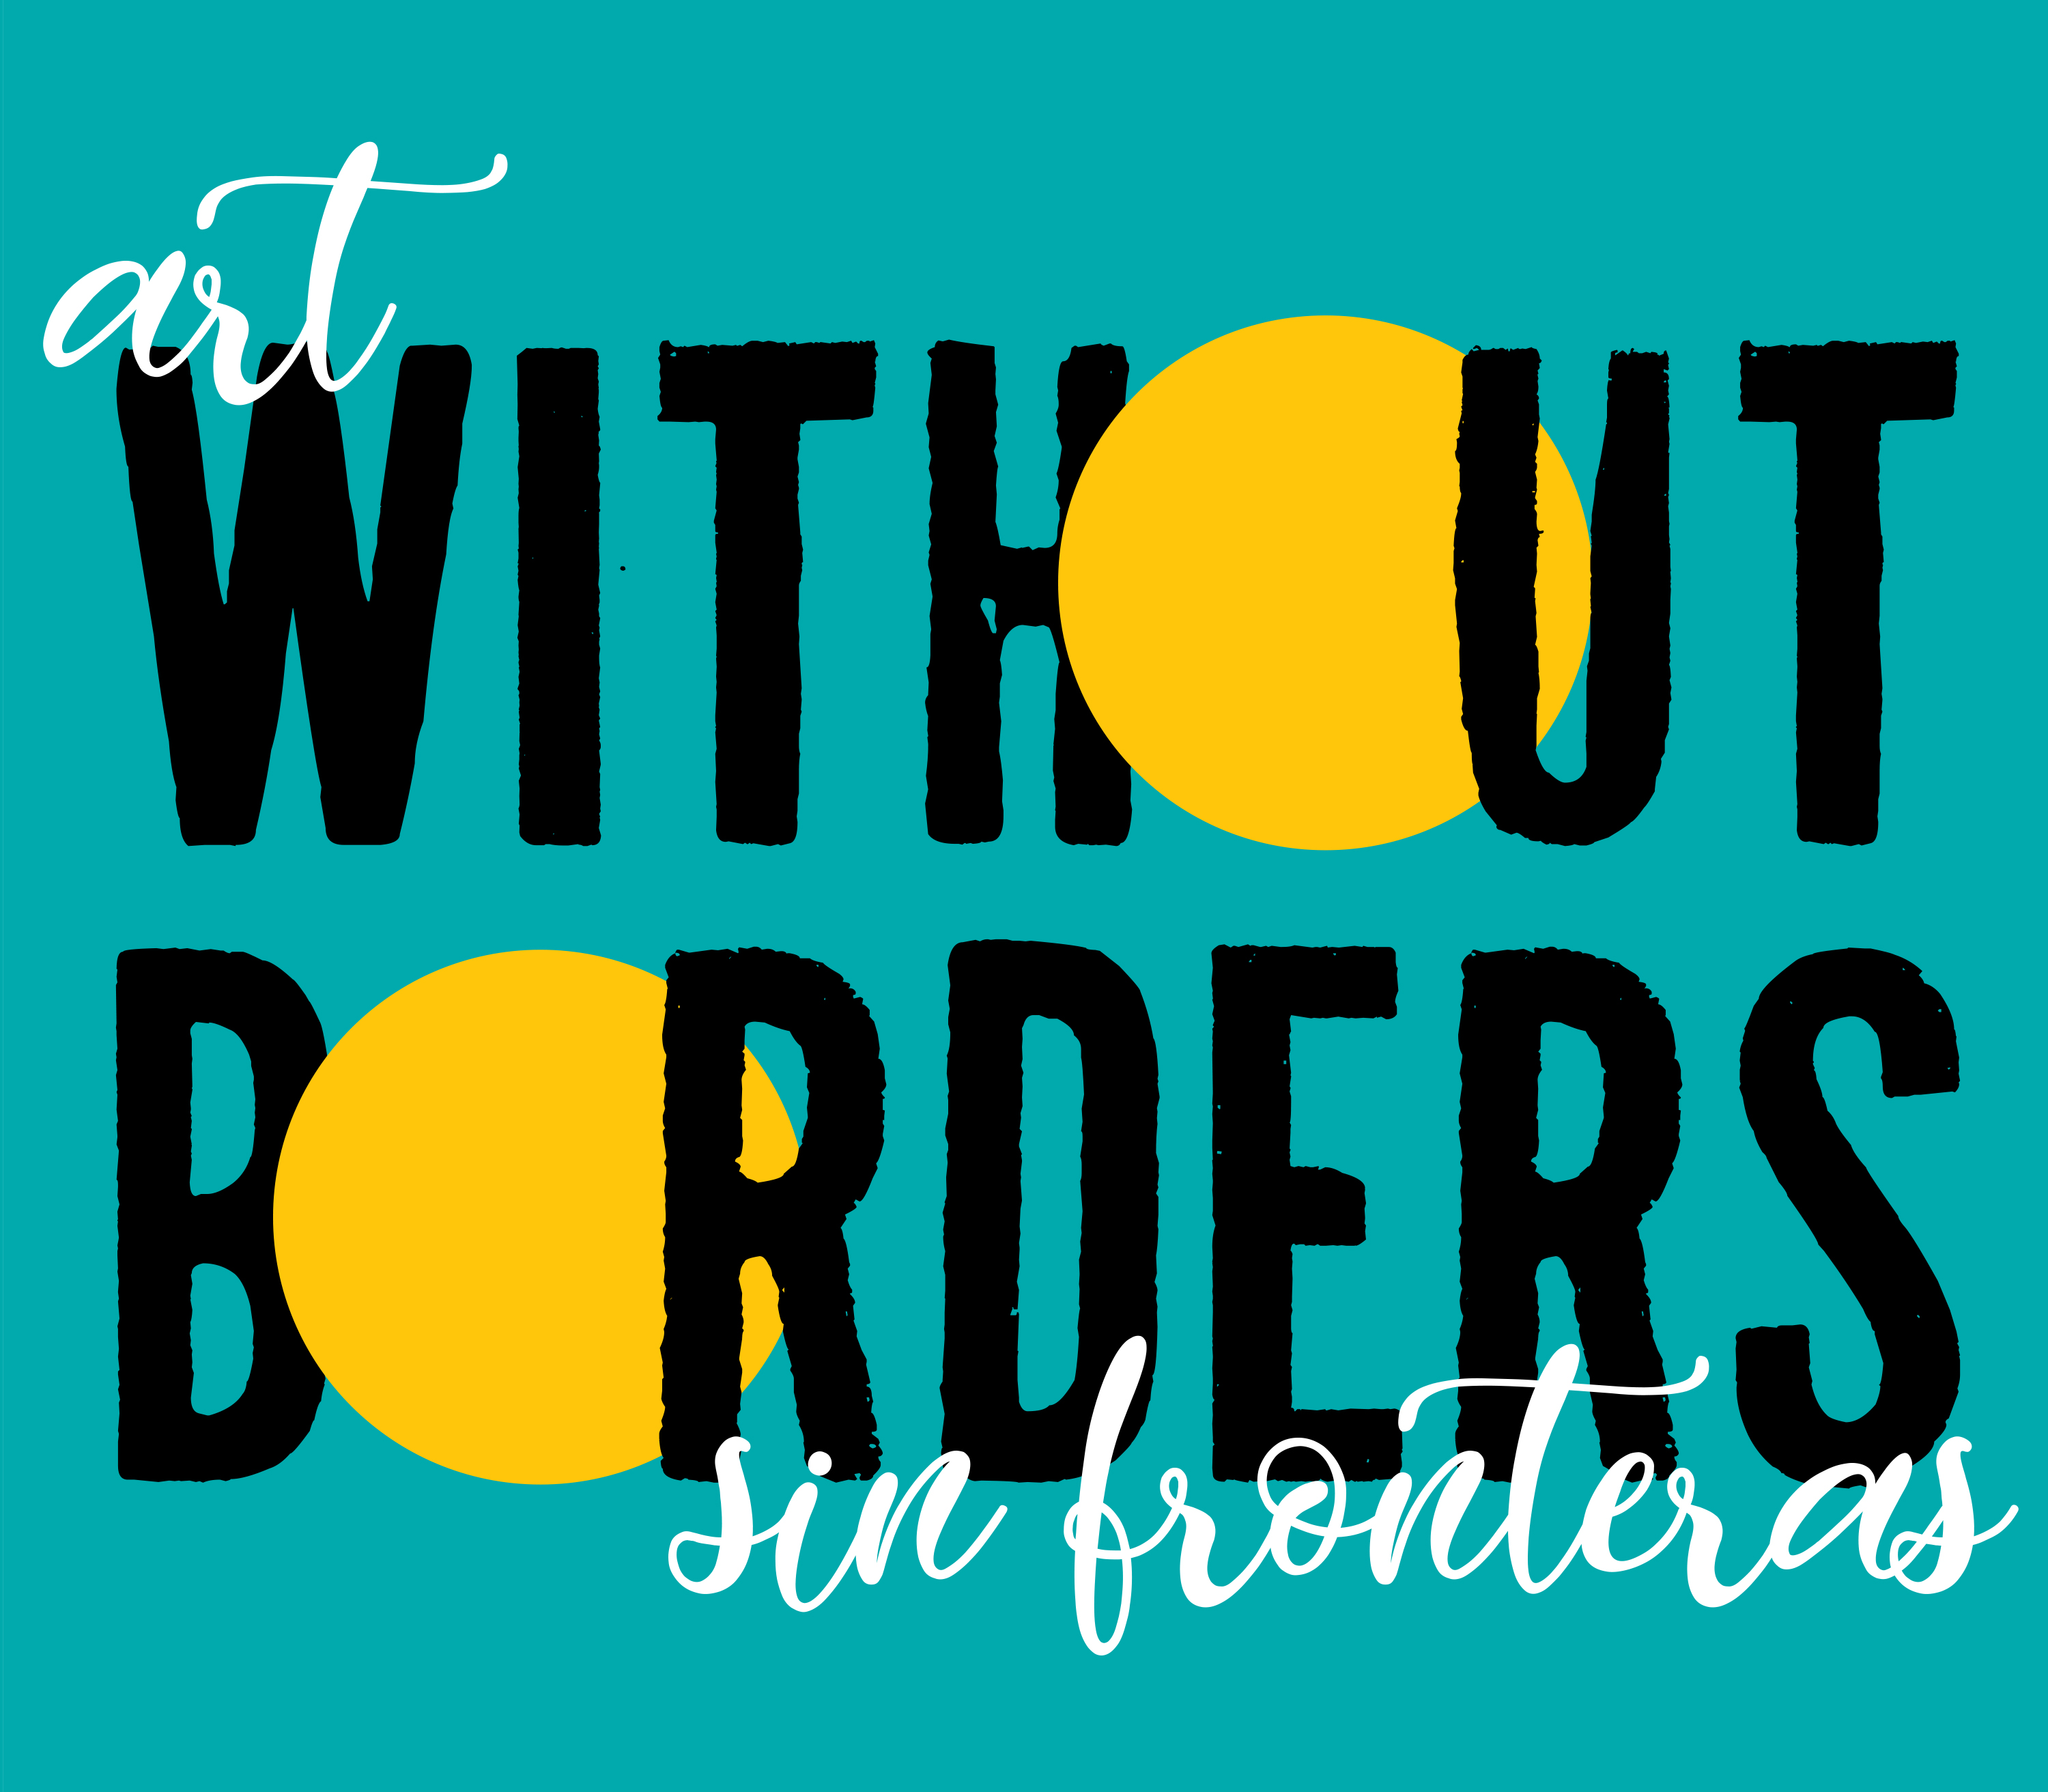 Without Borders: Art Sín Fronteras